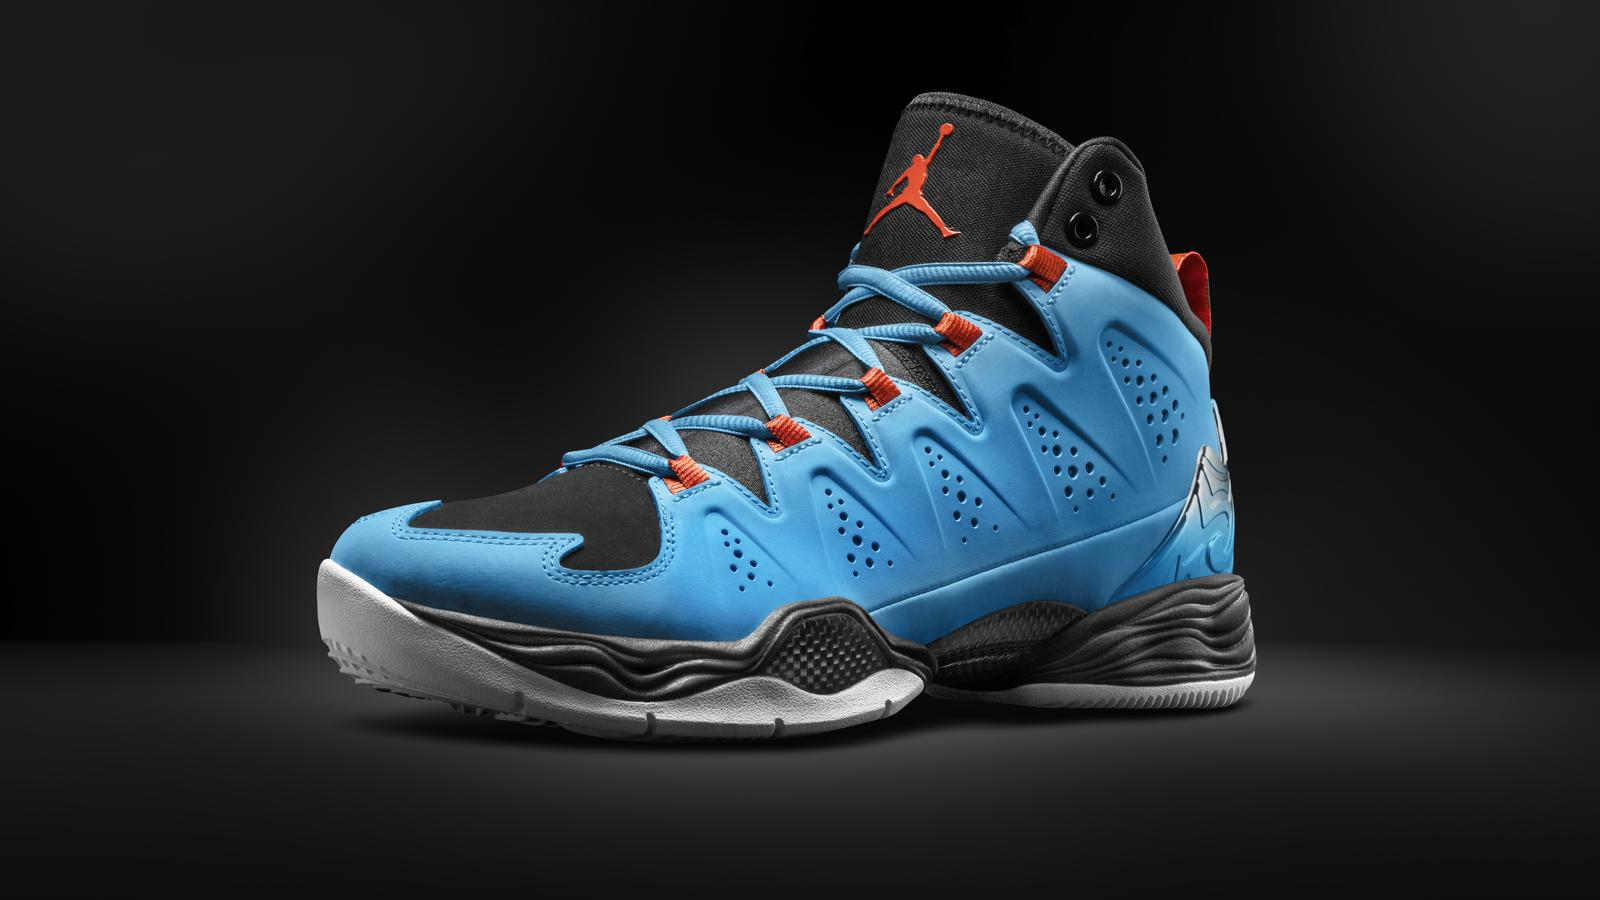 e624c09a3d41 The Jordan Brand and Carmelo Anthony Celebrate 10 Years With The ...